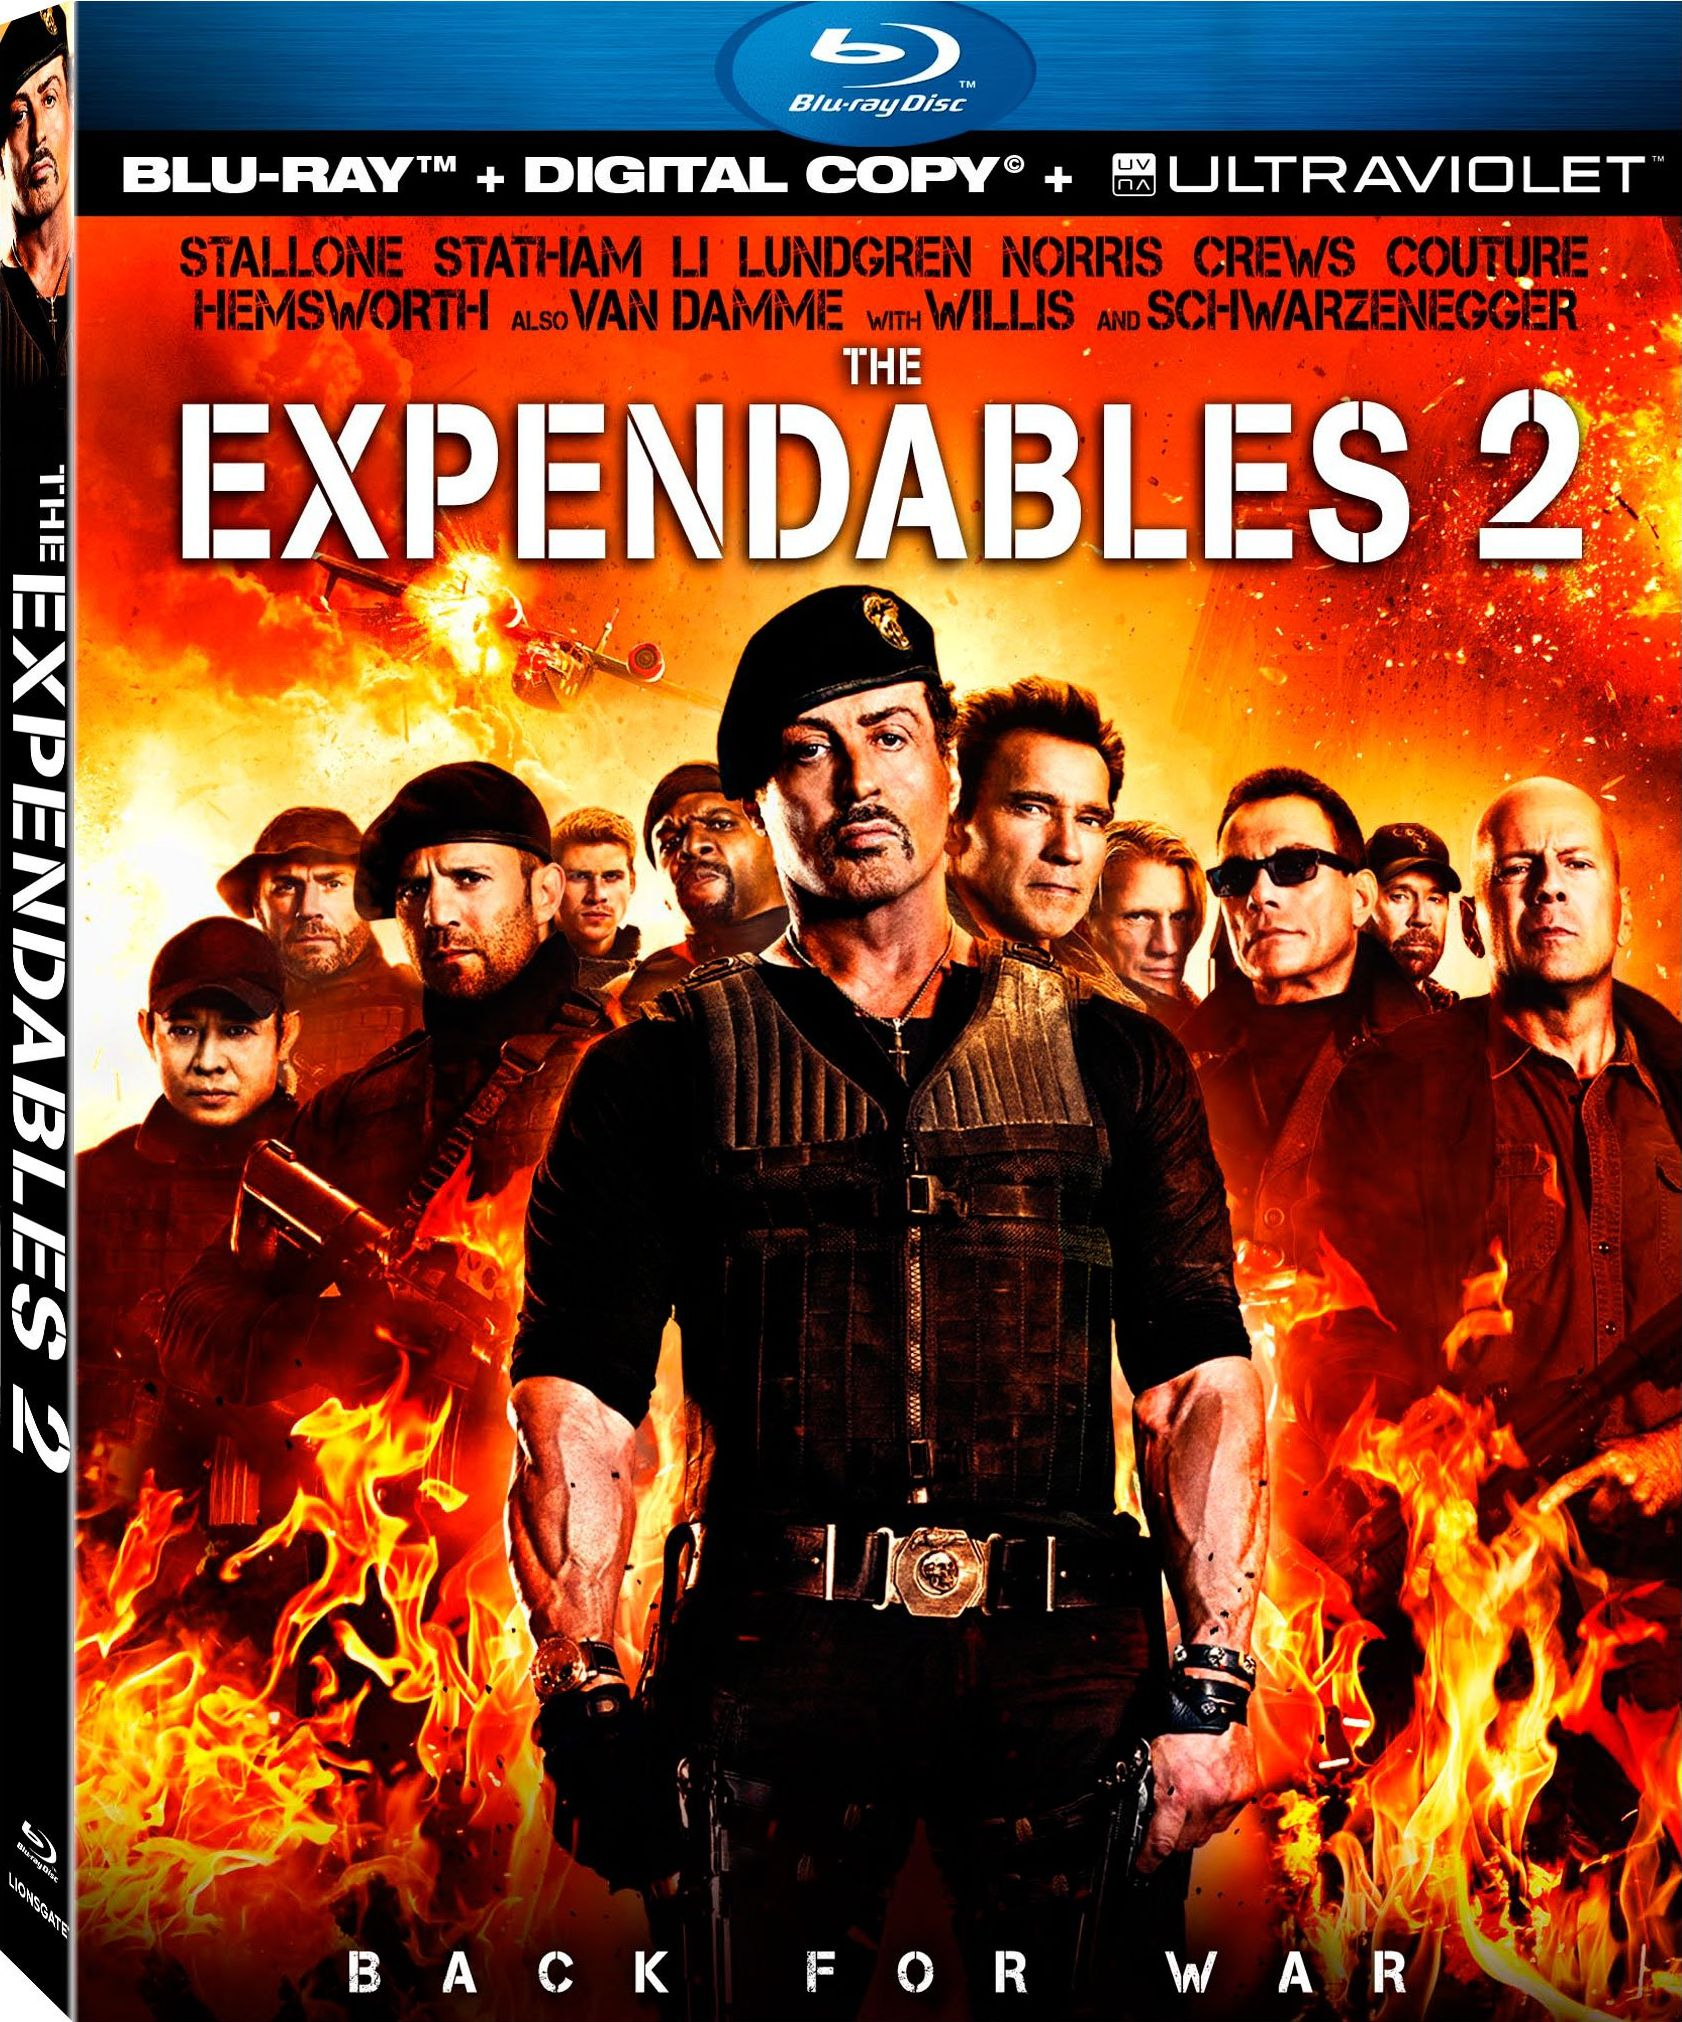 The Expendables 2 Blu-Ray Review